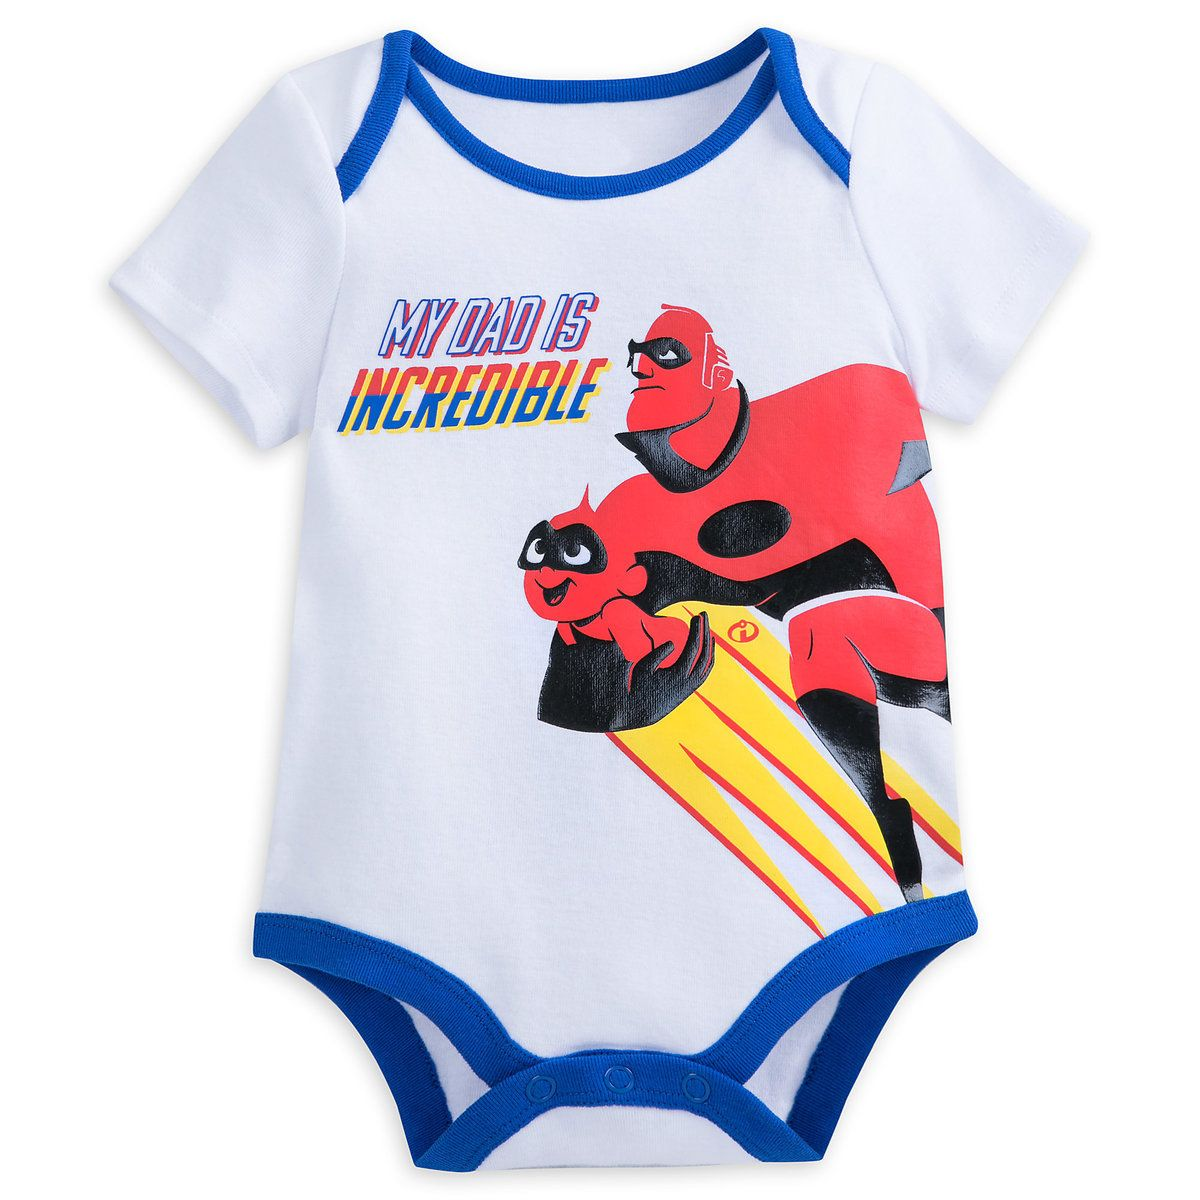 eaeb2d084a868 Incredibles 2 Bodysuit for Baby - White | Baby clothes | Disney baby ...